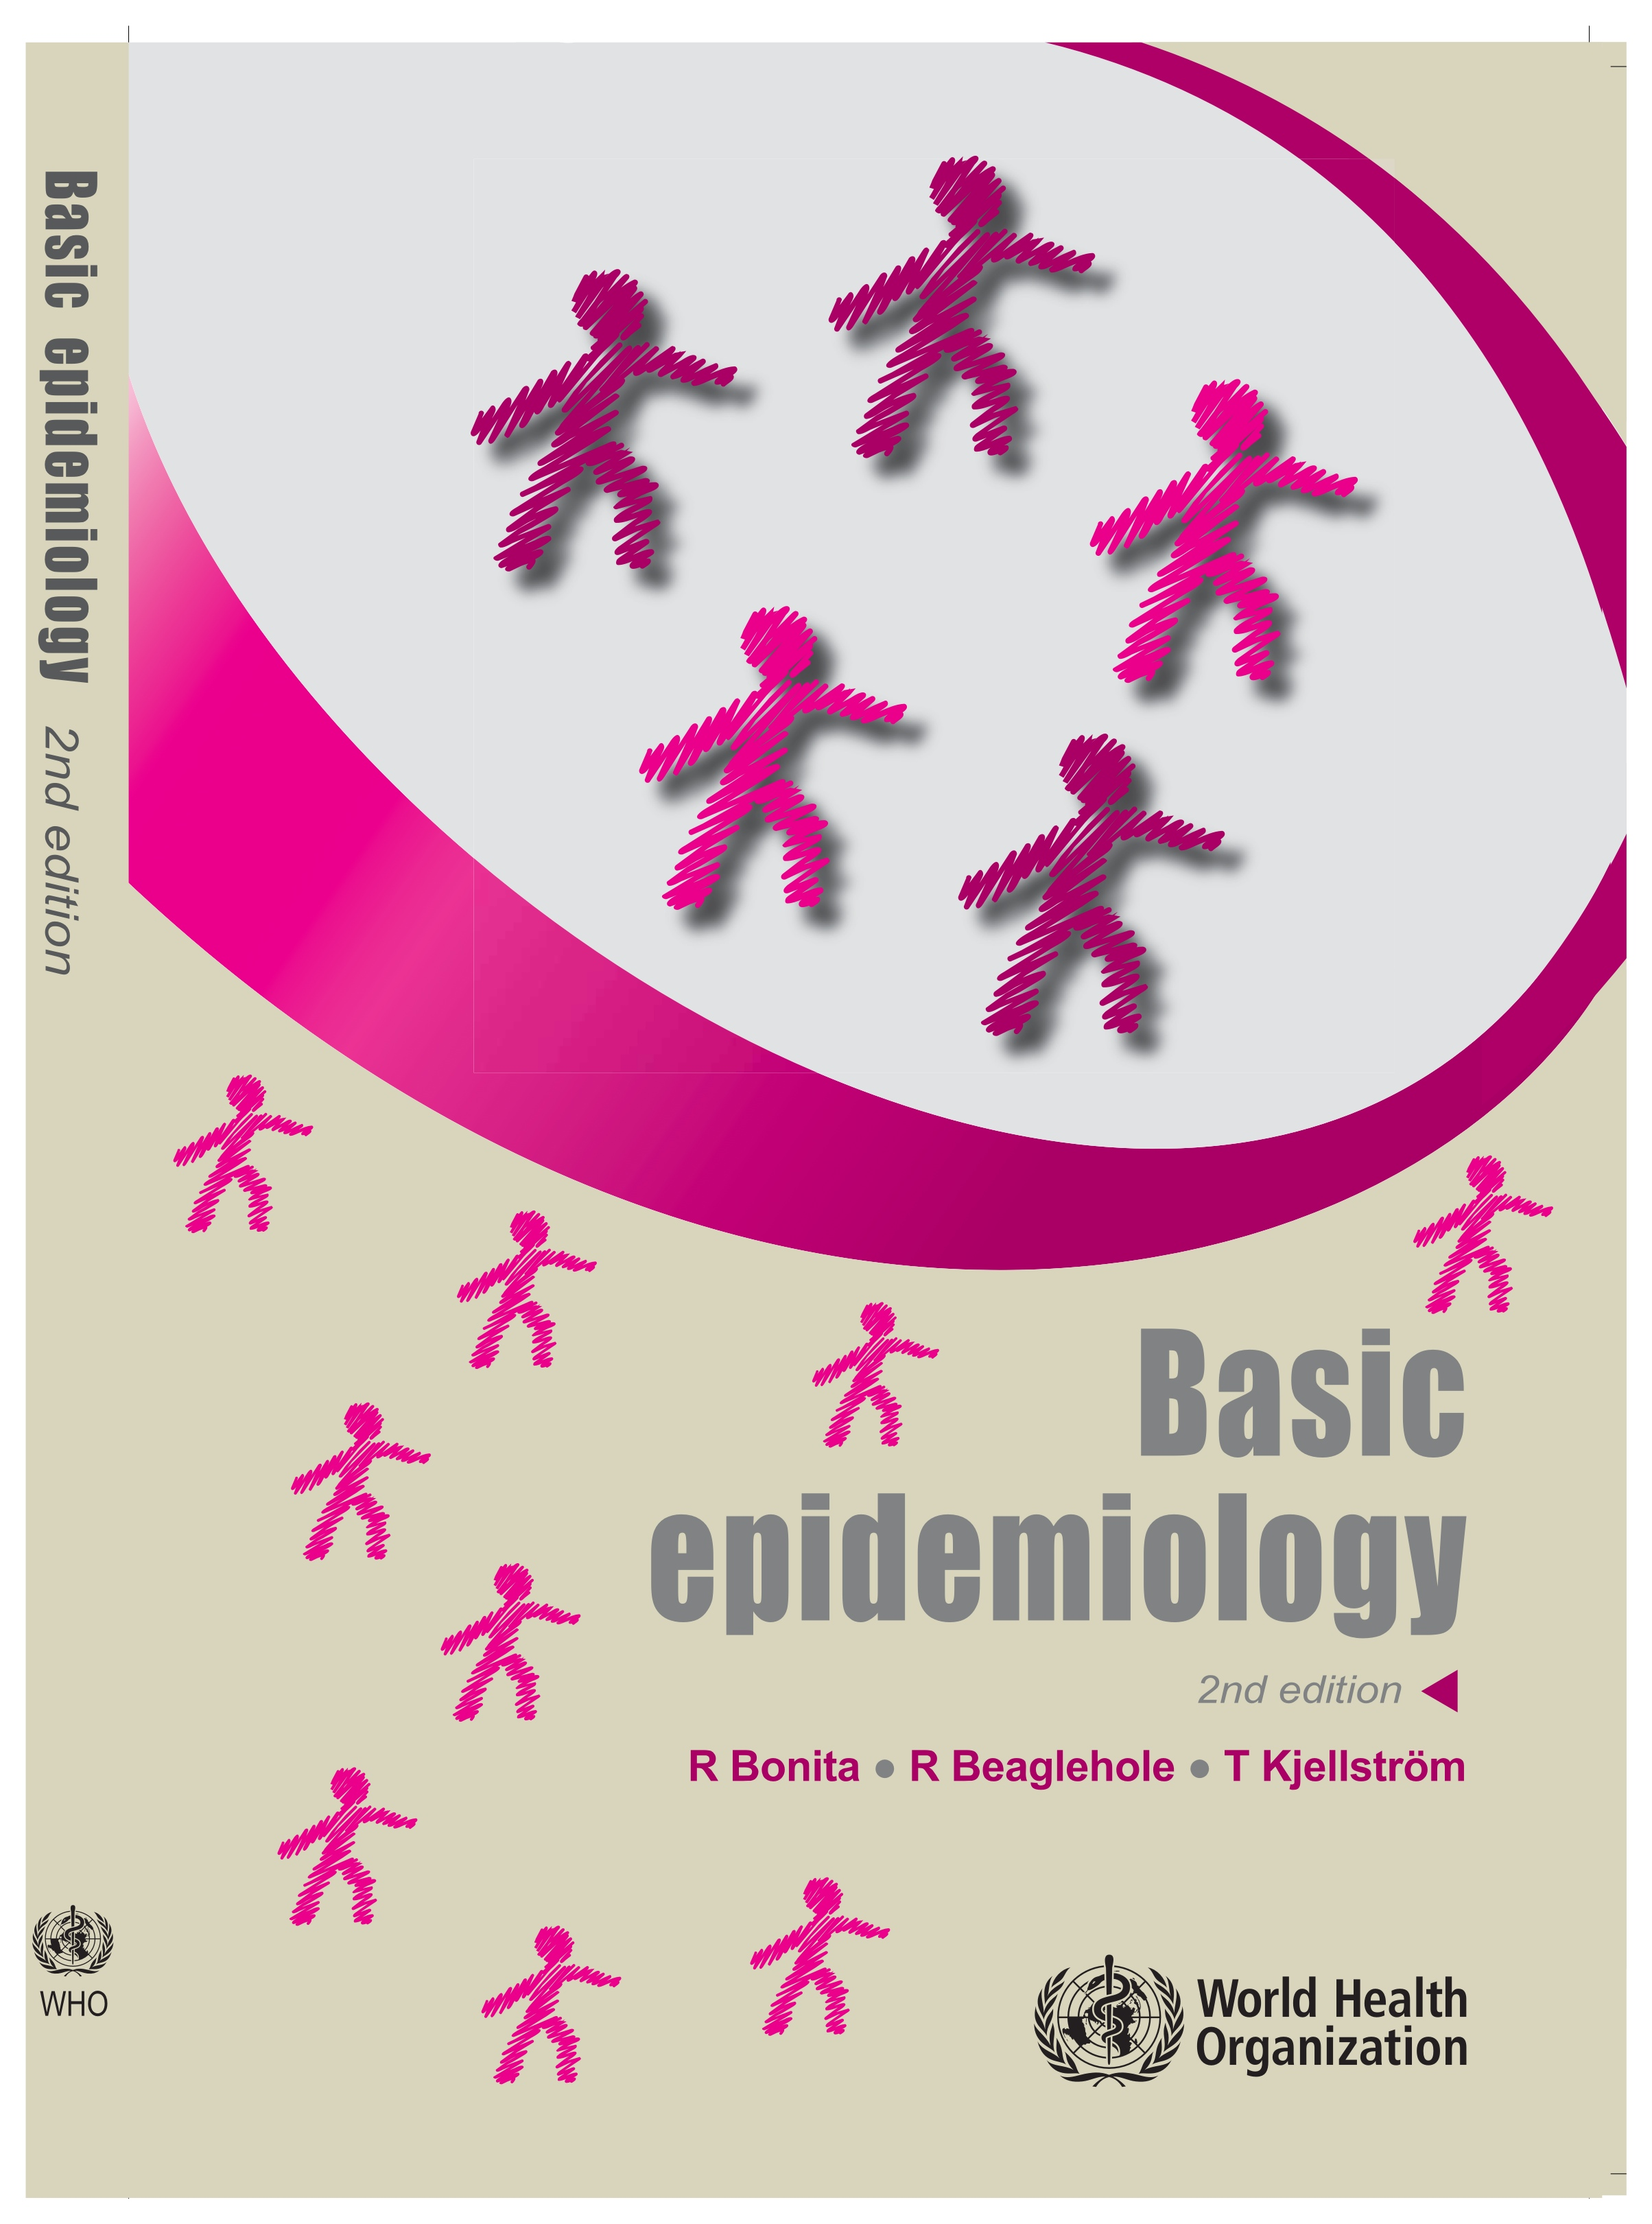 epidemiology activities Provides an overview of current research in the department and in the field of epidemiology, and offers an opportunity for discussion and clarification of epidemiologic methods as applied in research settings.